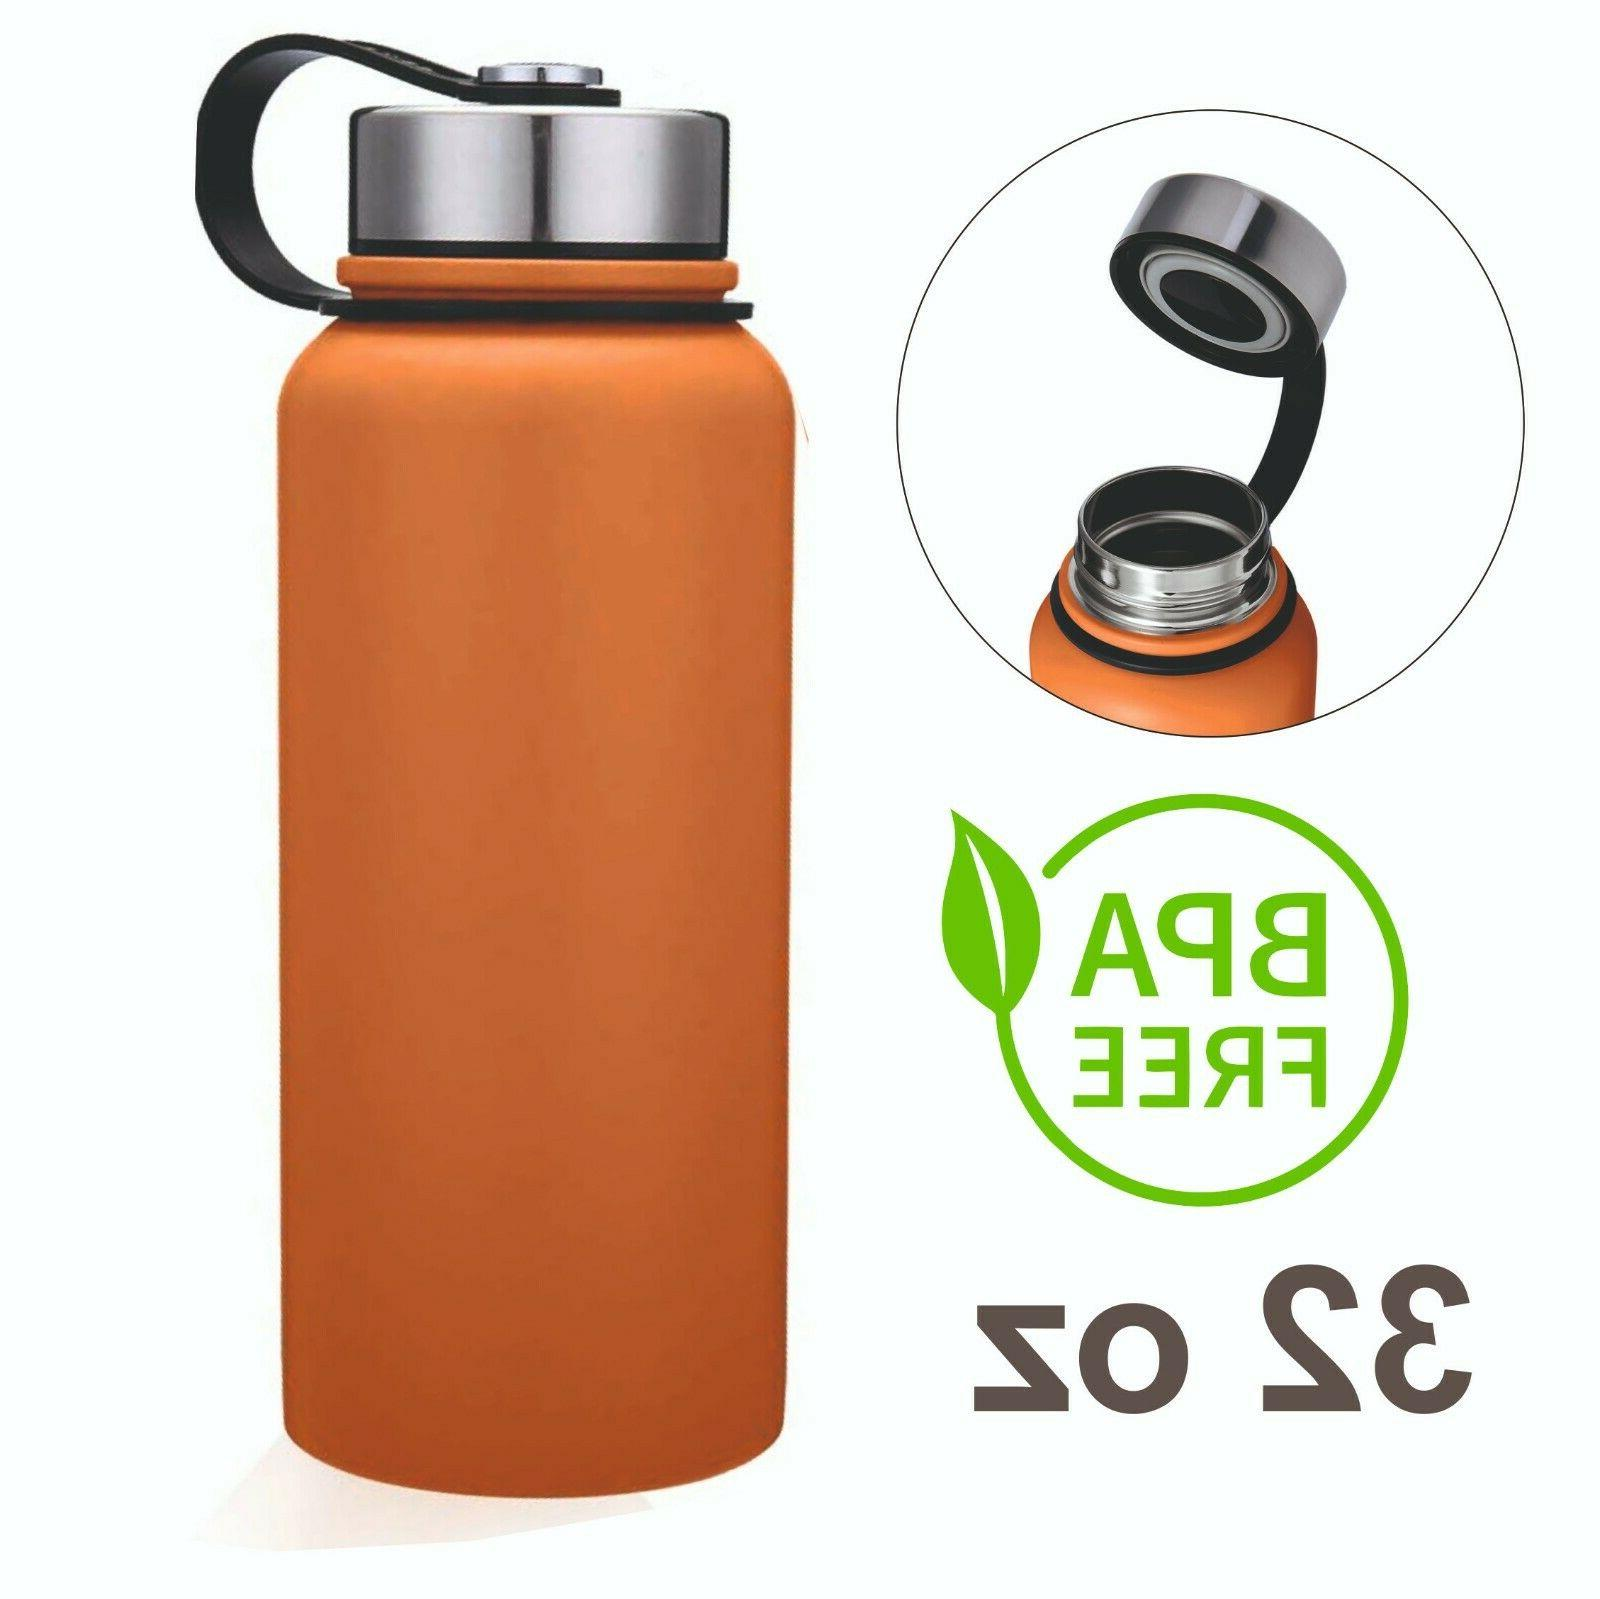 32oz double wall vacuum insulated stainless steel